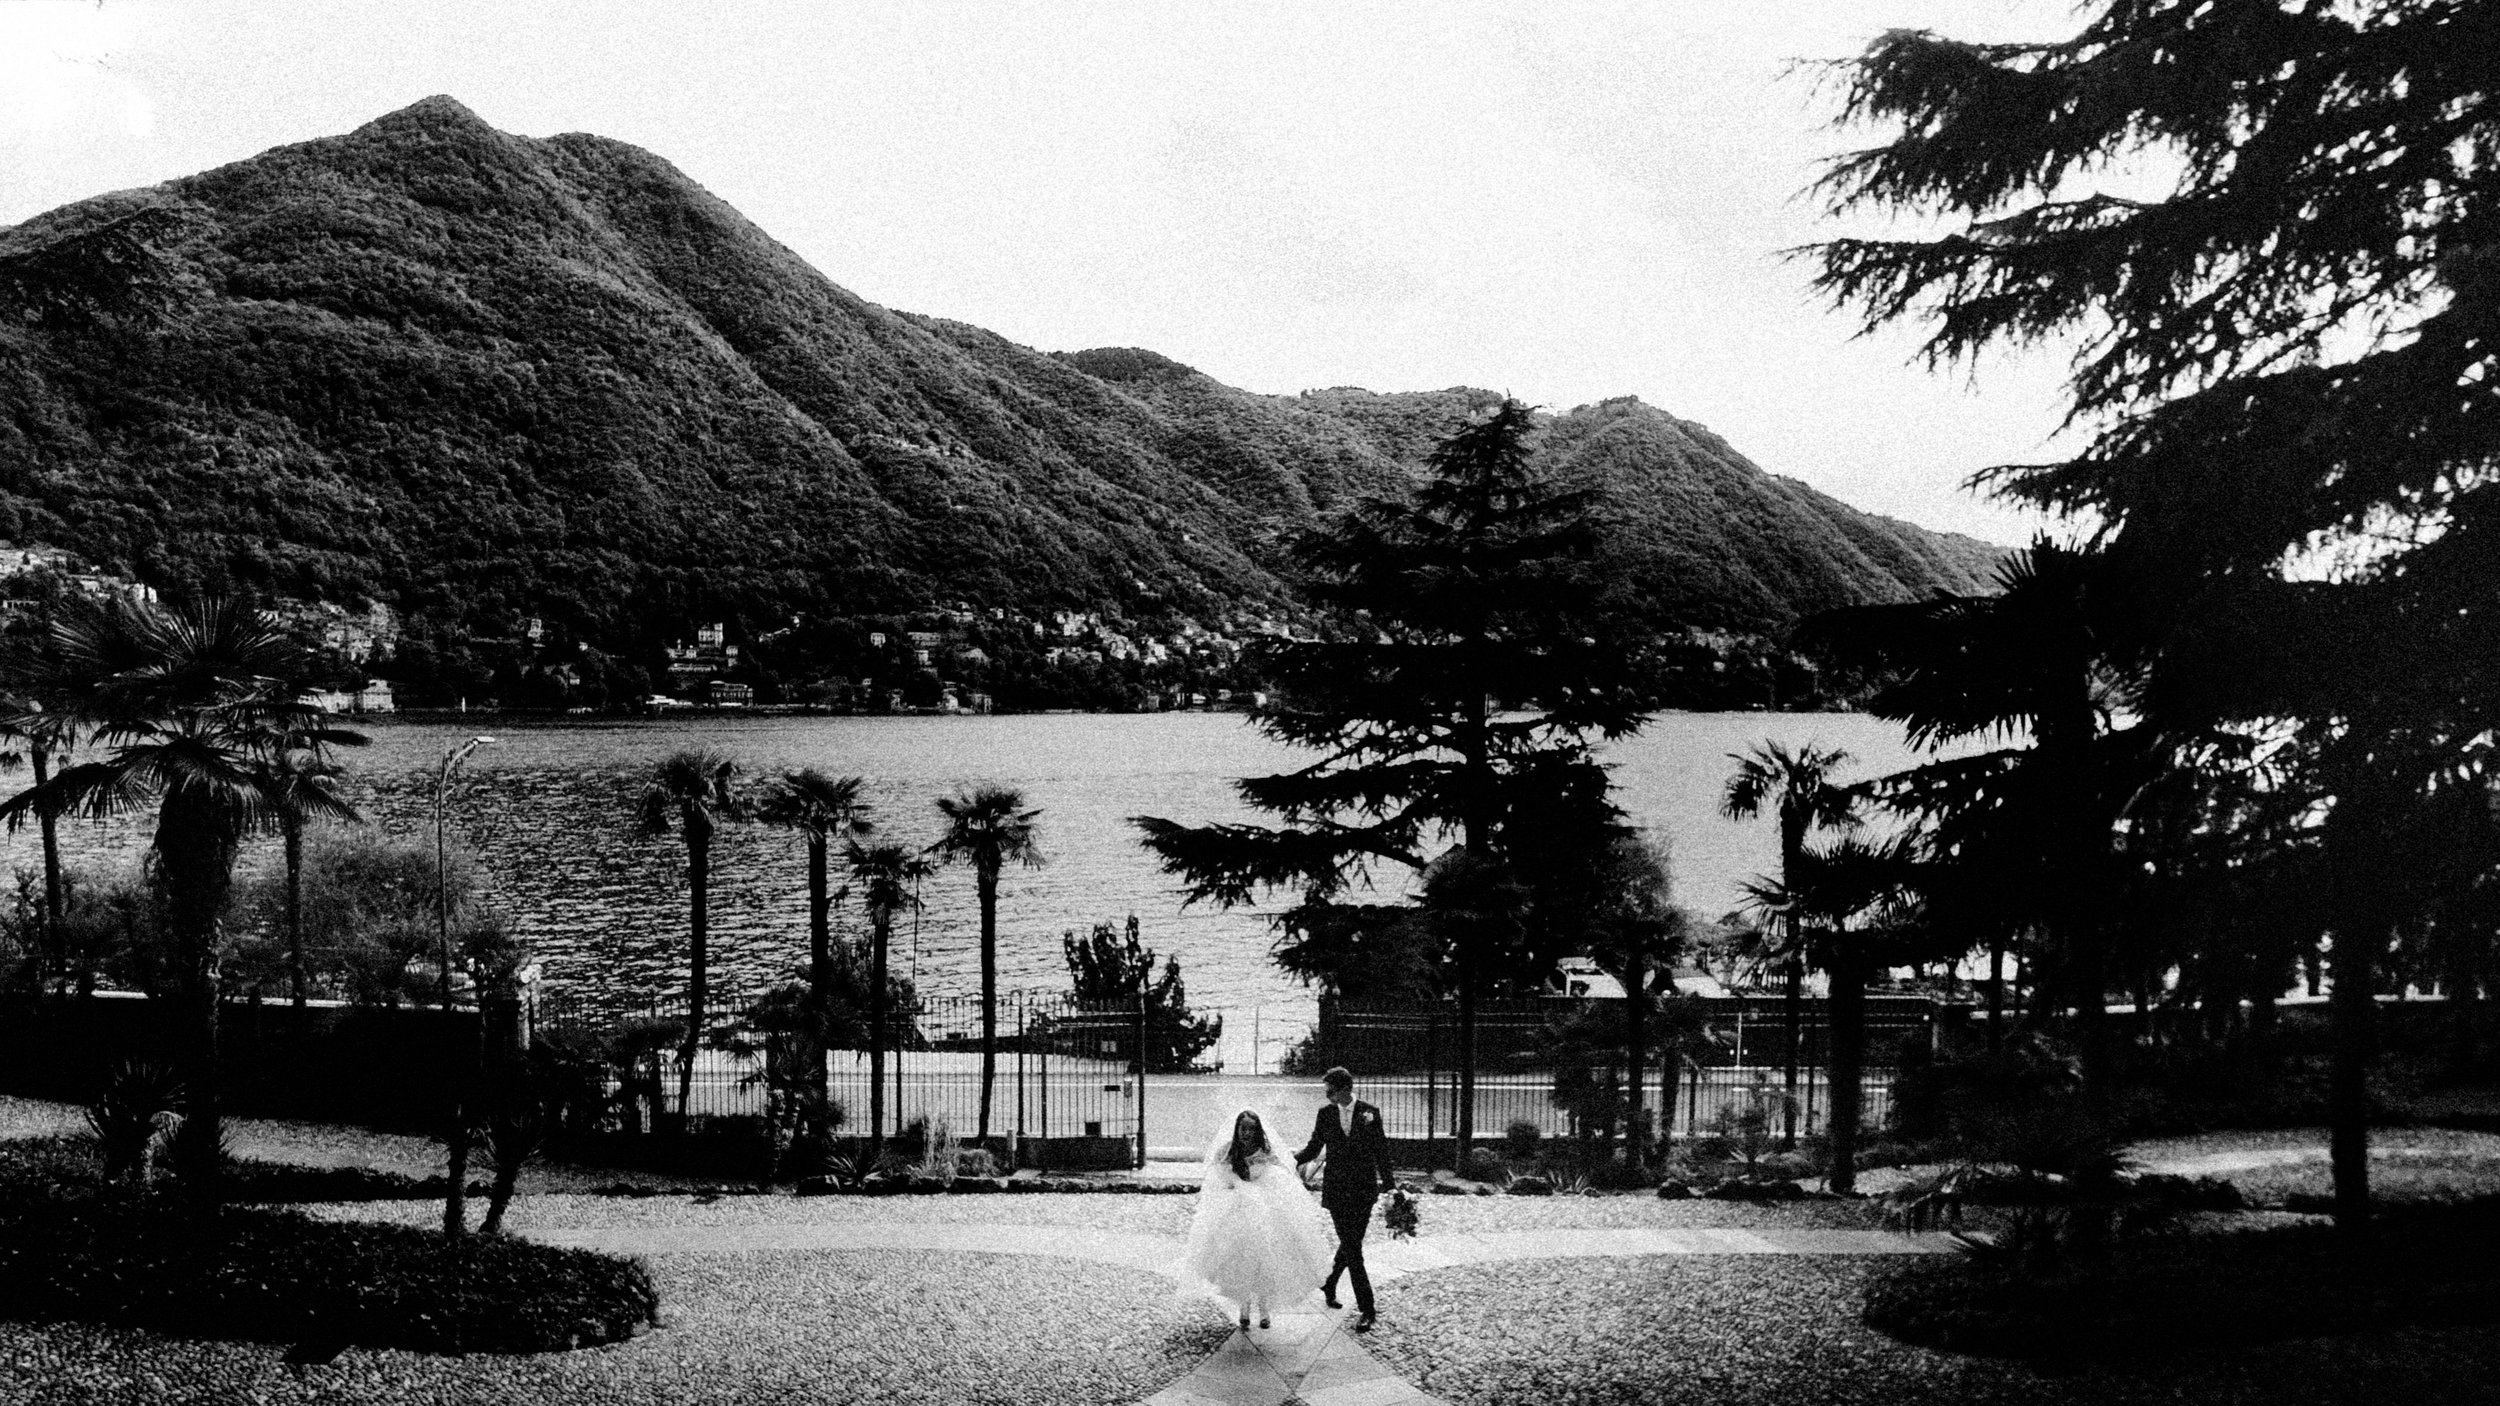 Bride and Groom arriving on the shore of lake como during an exclusive wedding at villa passalacqua